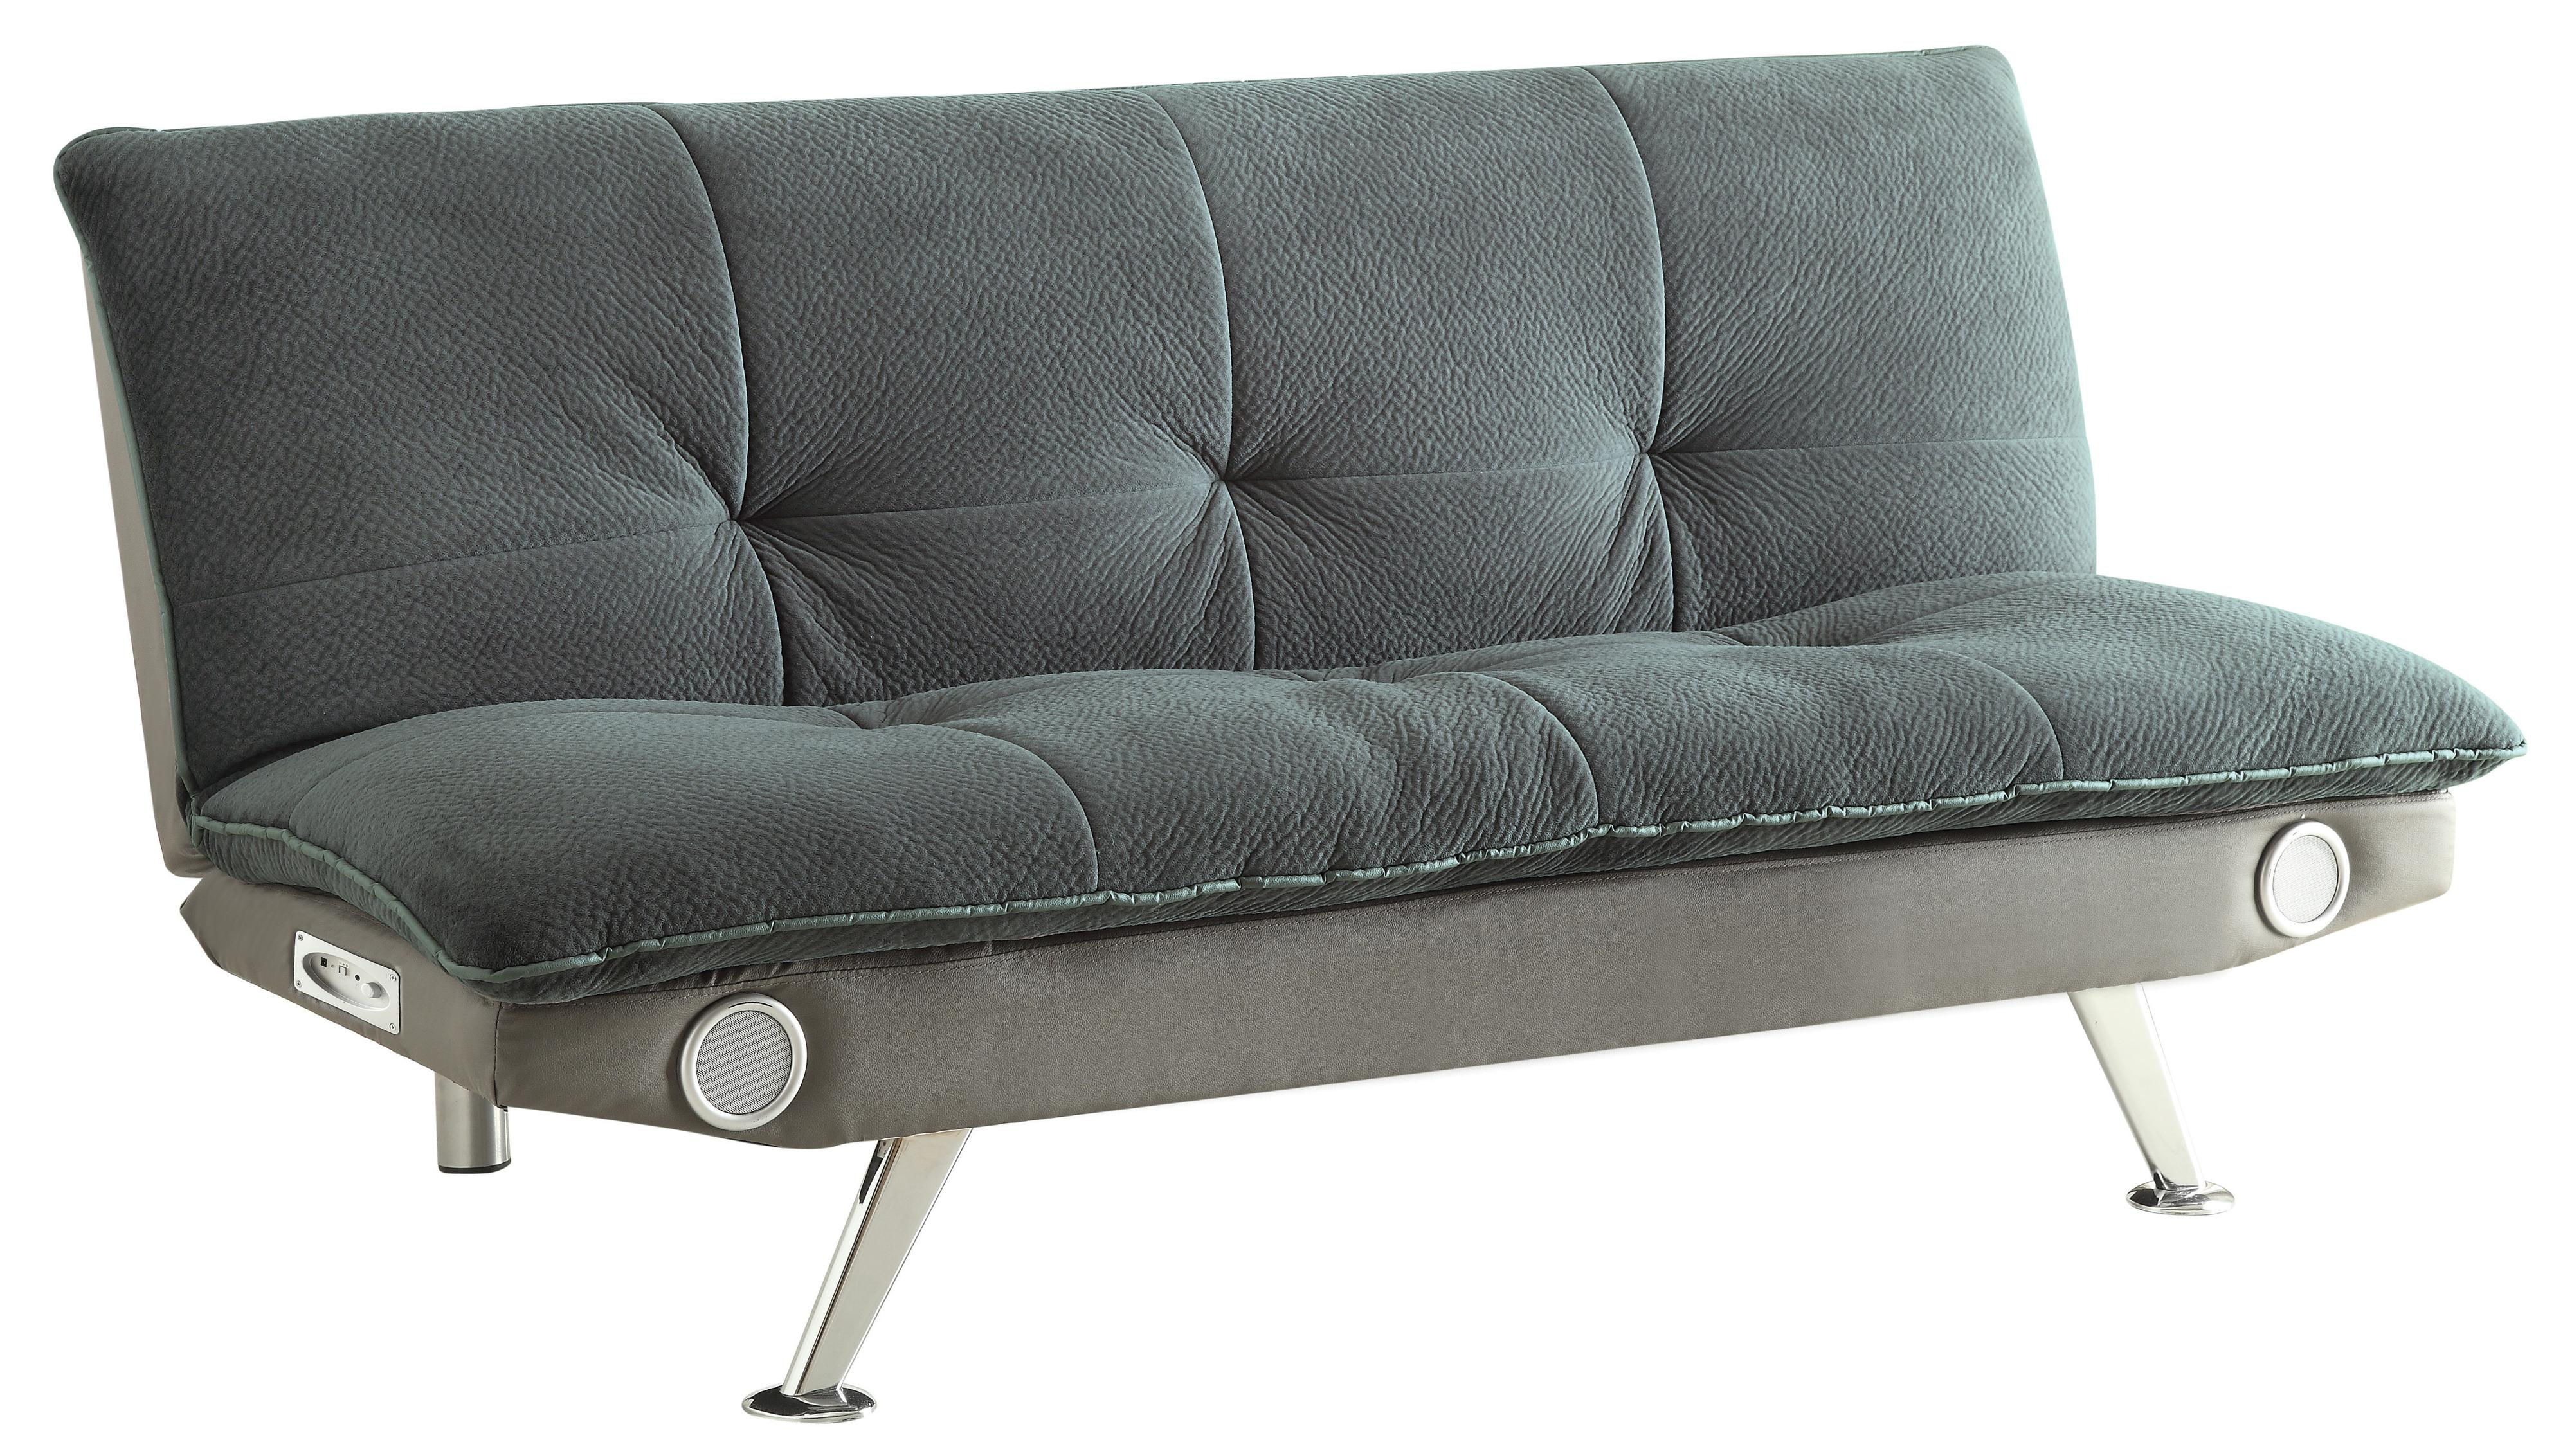 Sofa Bed With Built In Bluetooth Speakers